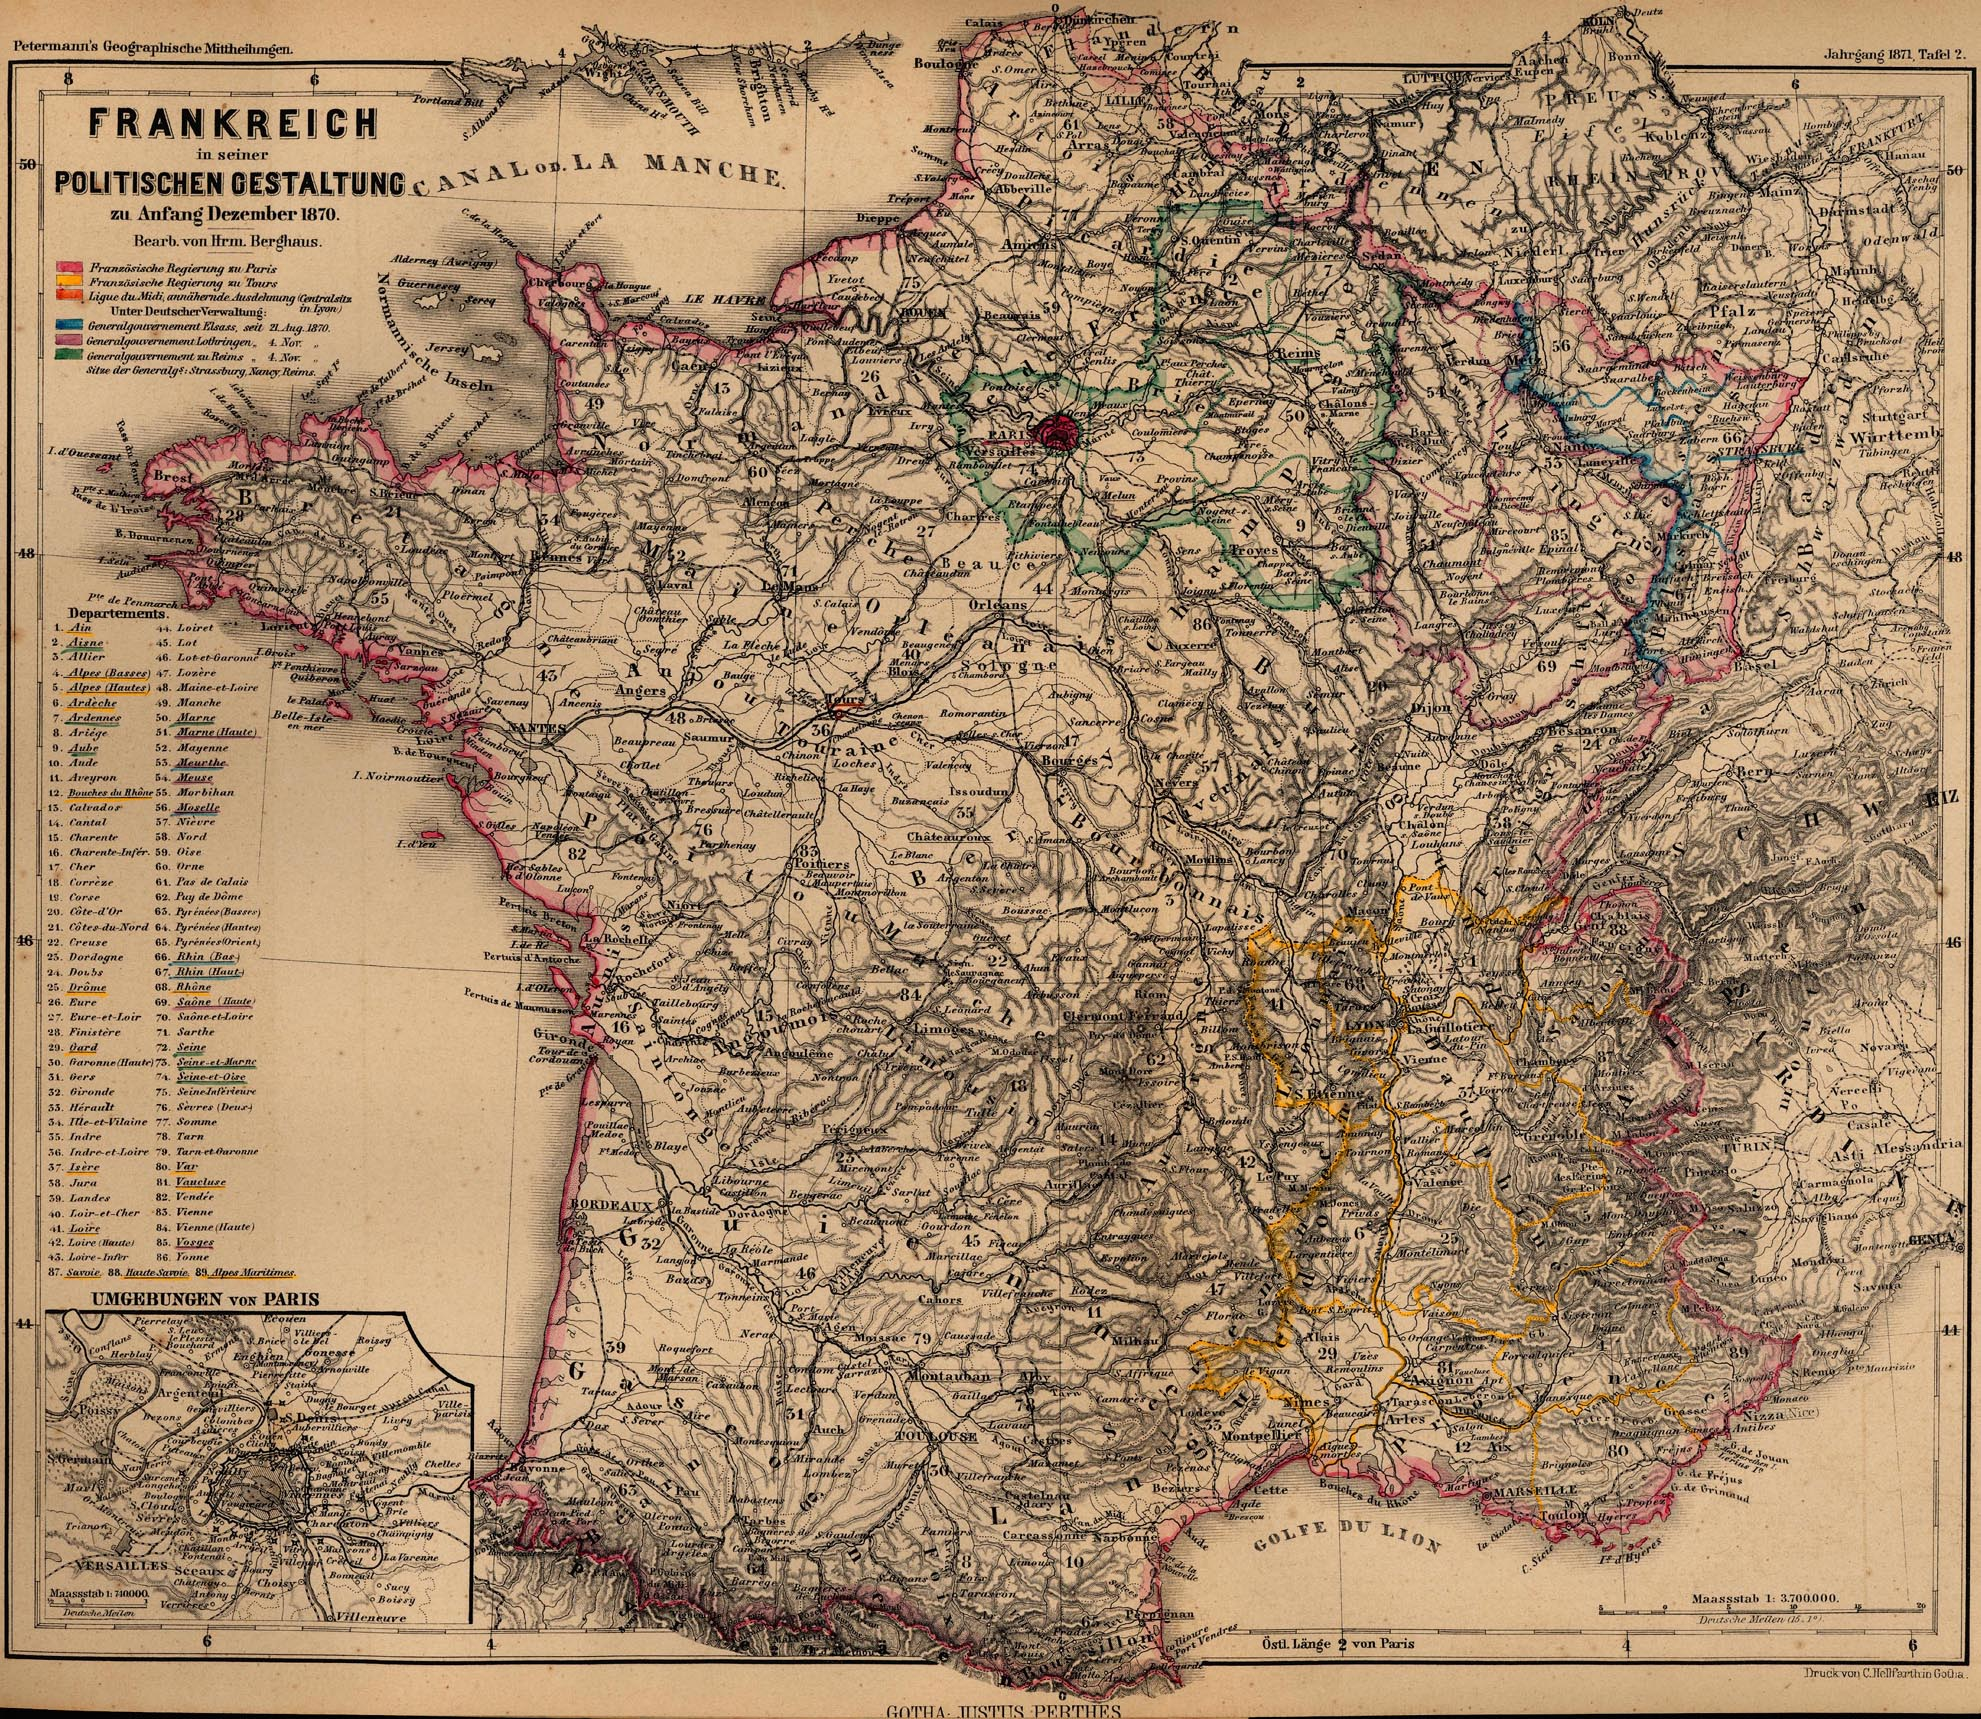 France Maps   Perry Casta    eda Map Collection   UT Library Online  301K   France 1870  Frankreich in